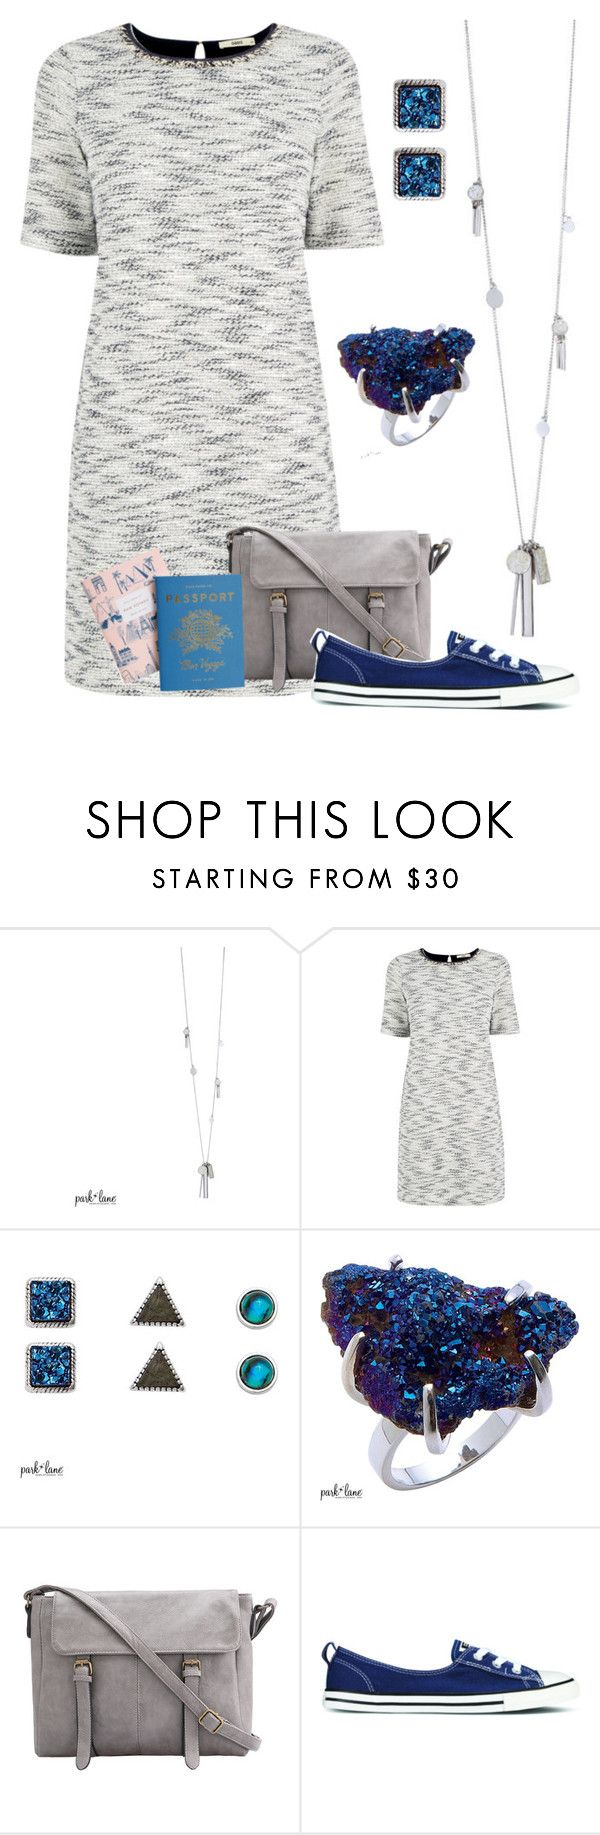 """""""My Park Lane Style"""" by parklanejewelry on Polyvore featuring Oasis and Converse"""